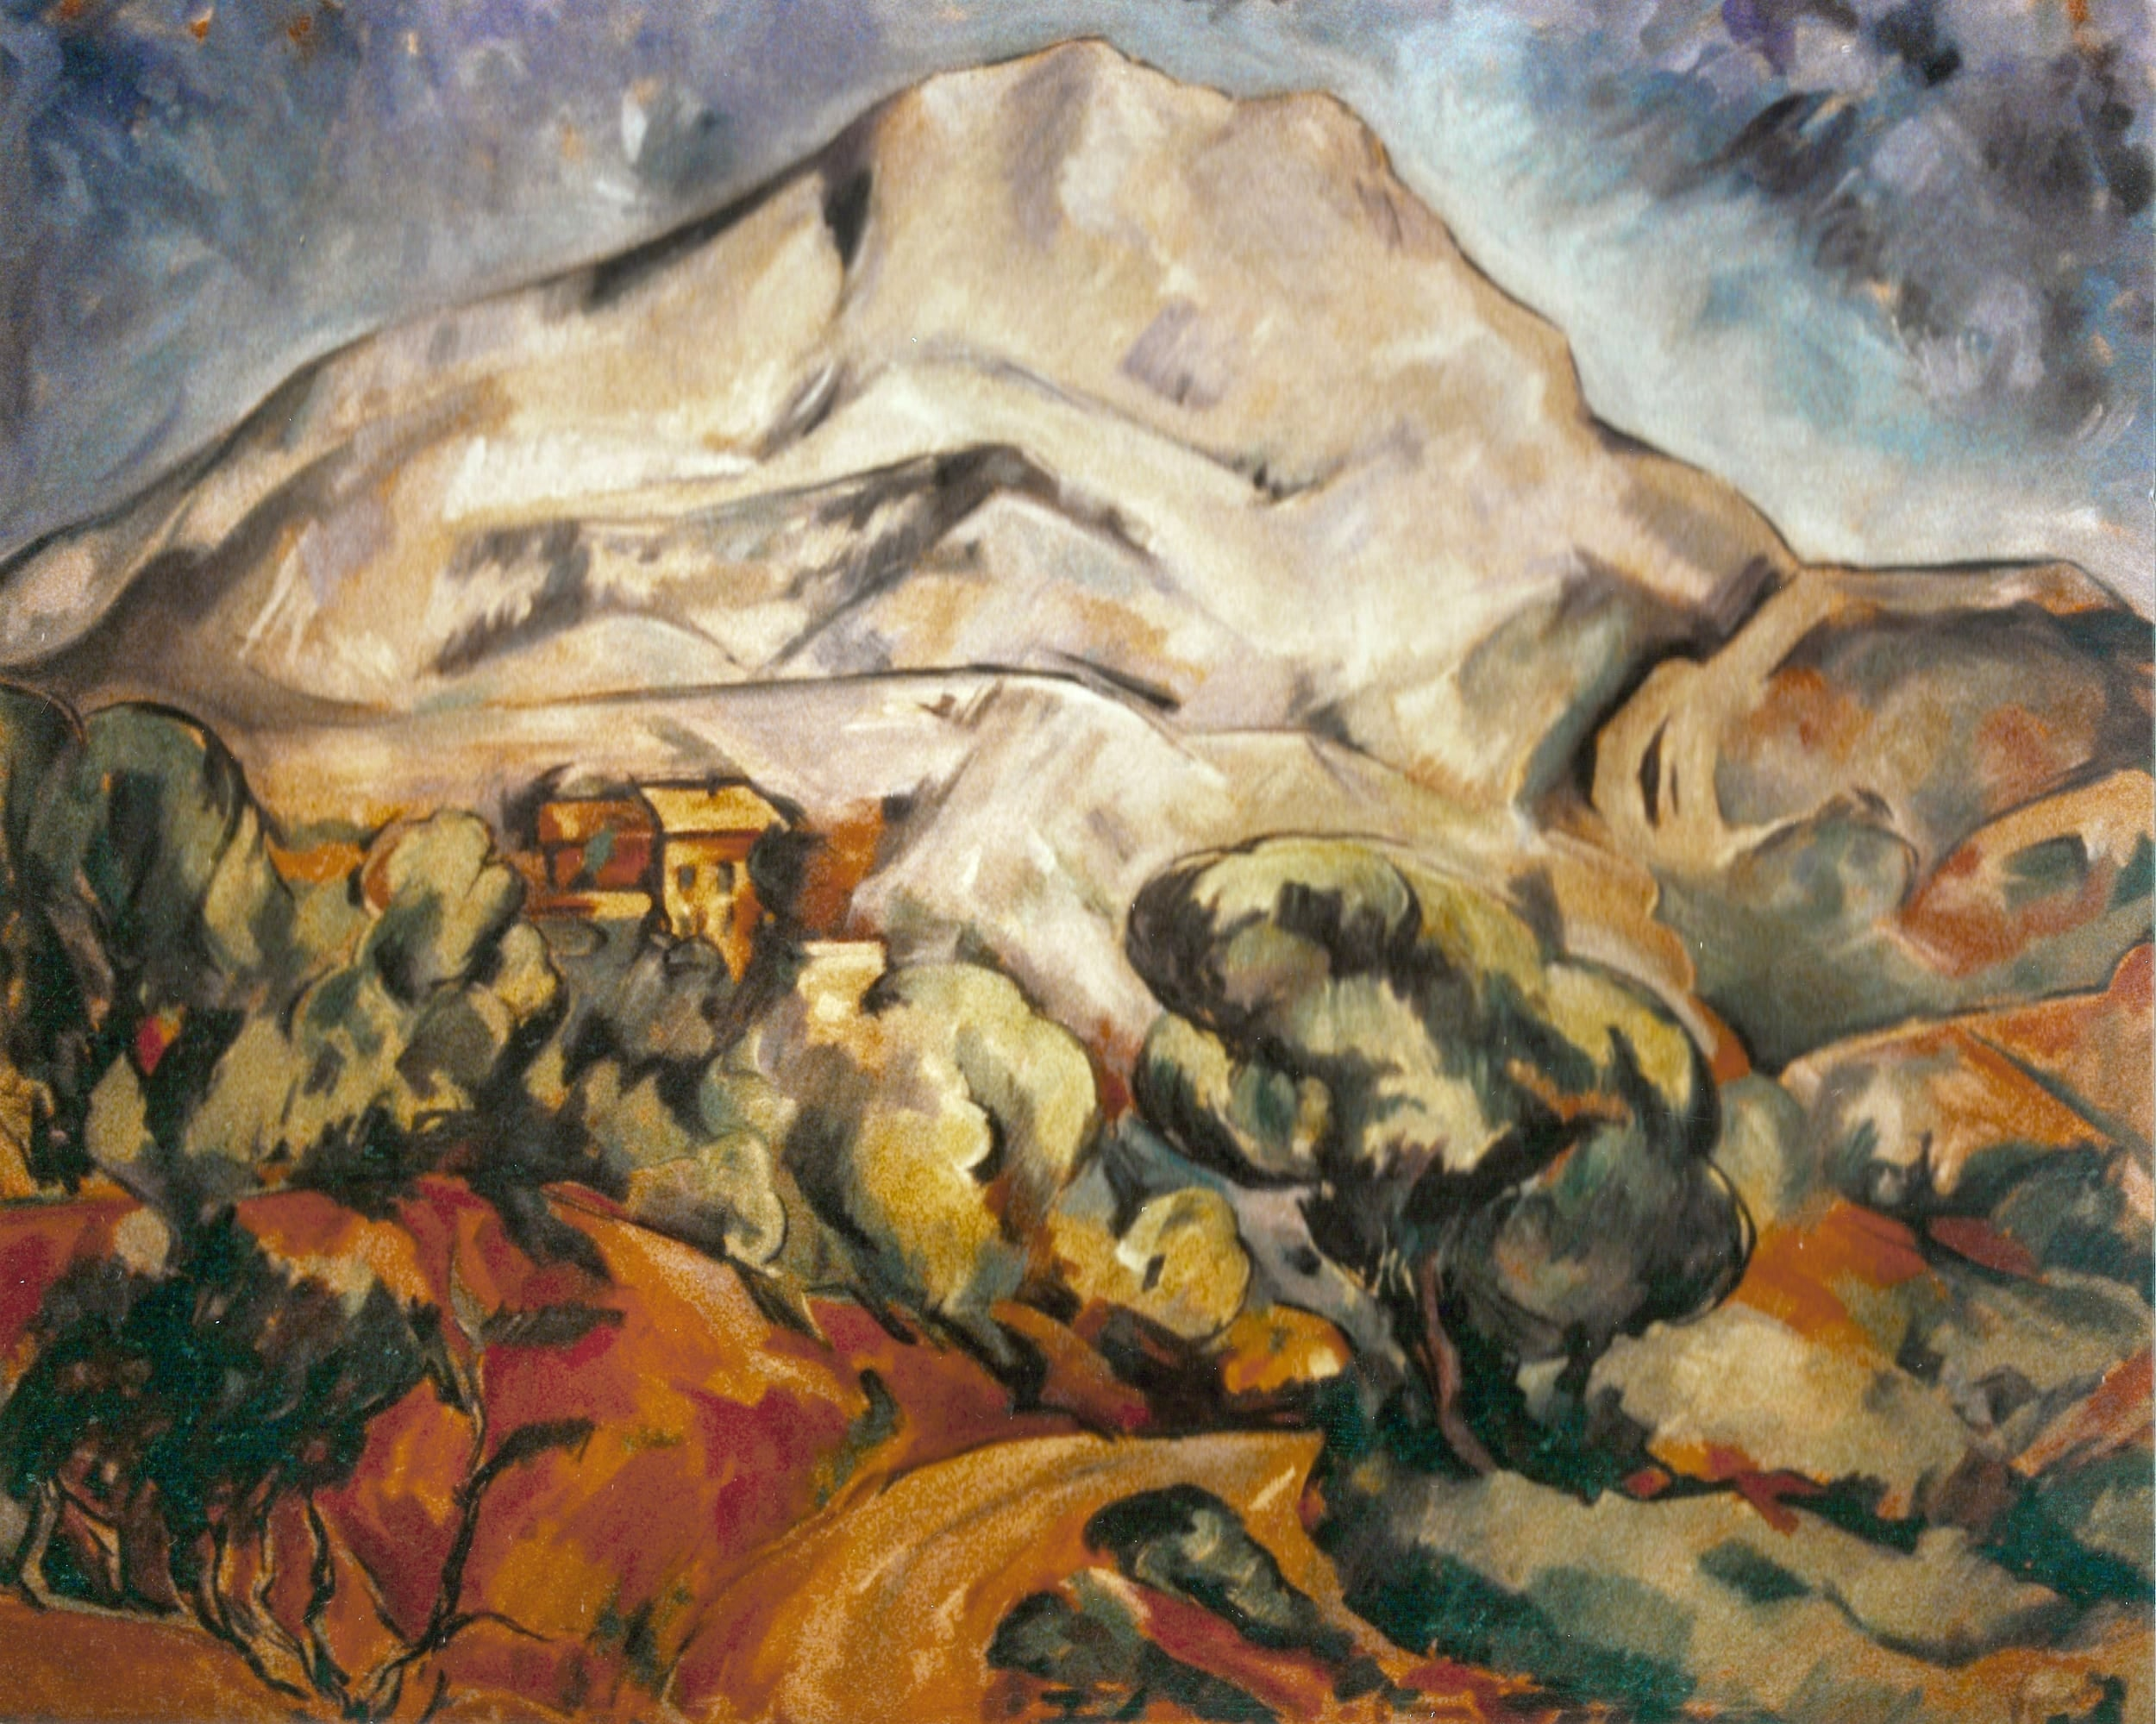 The Mont Sainte-Victoire, 1900 by Paul Ce'zanne